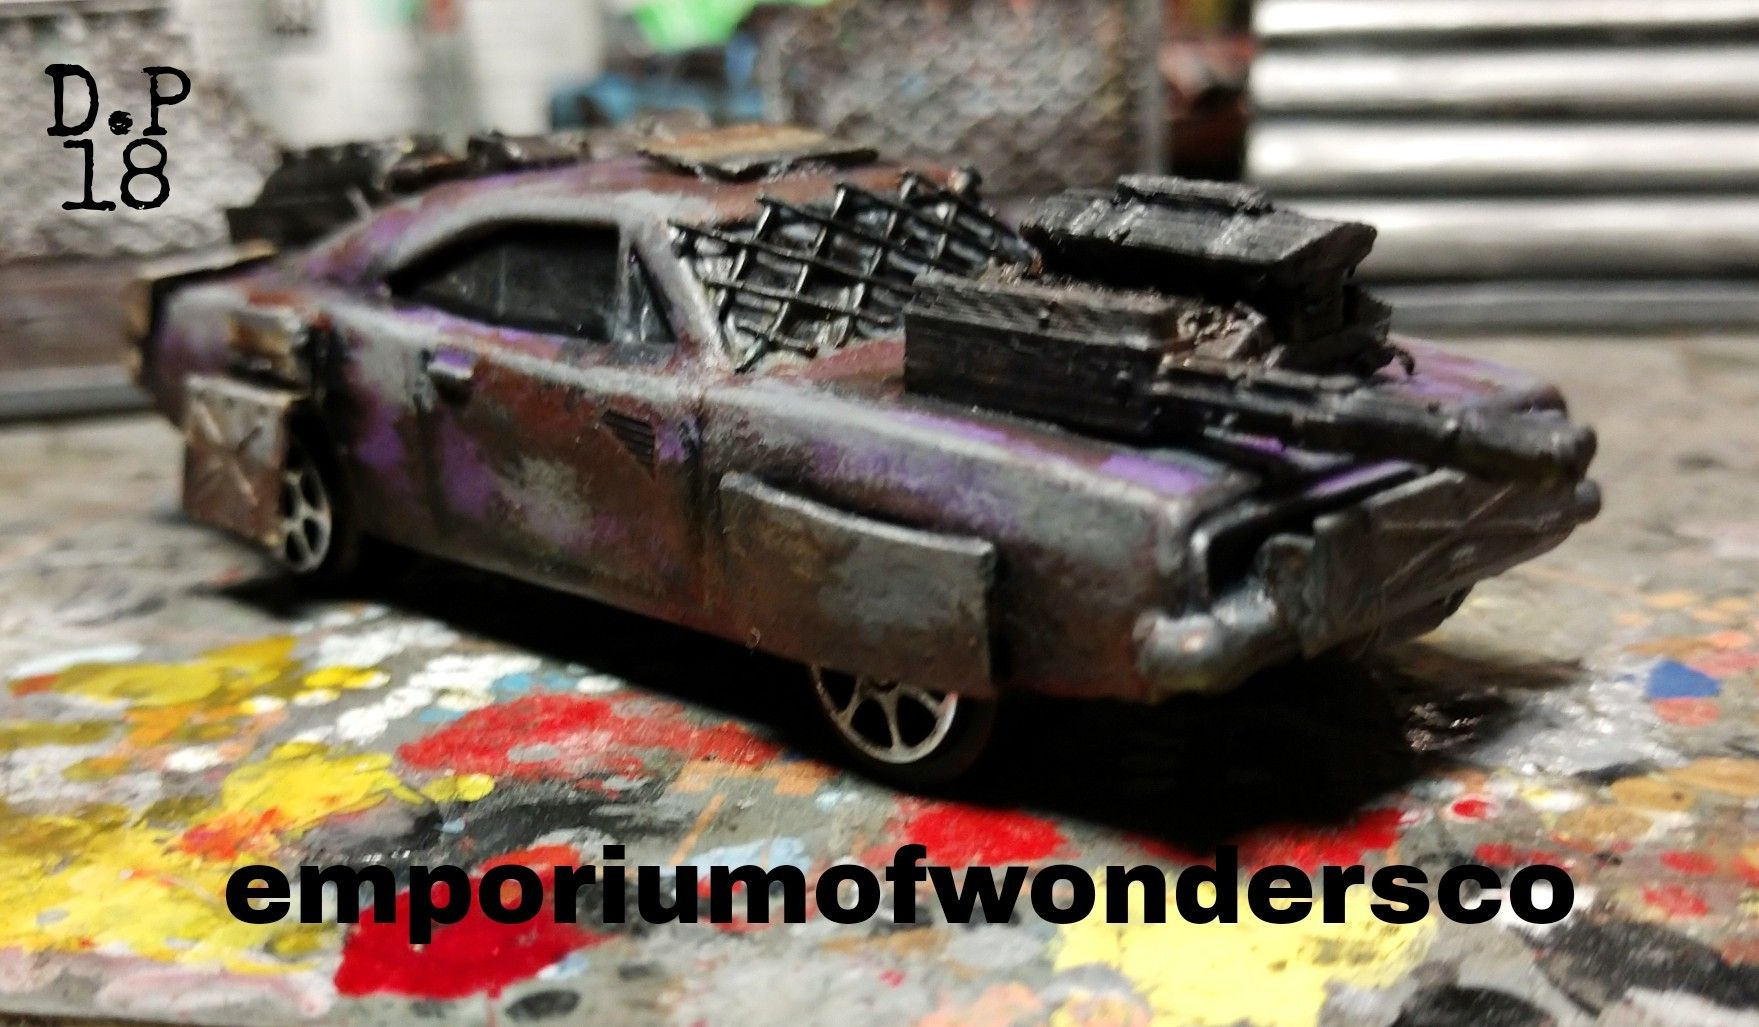 1/64 scale post apocalyptic battle car  Great for games like